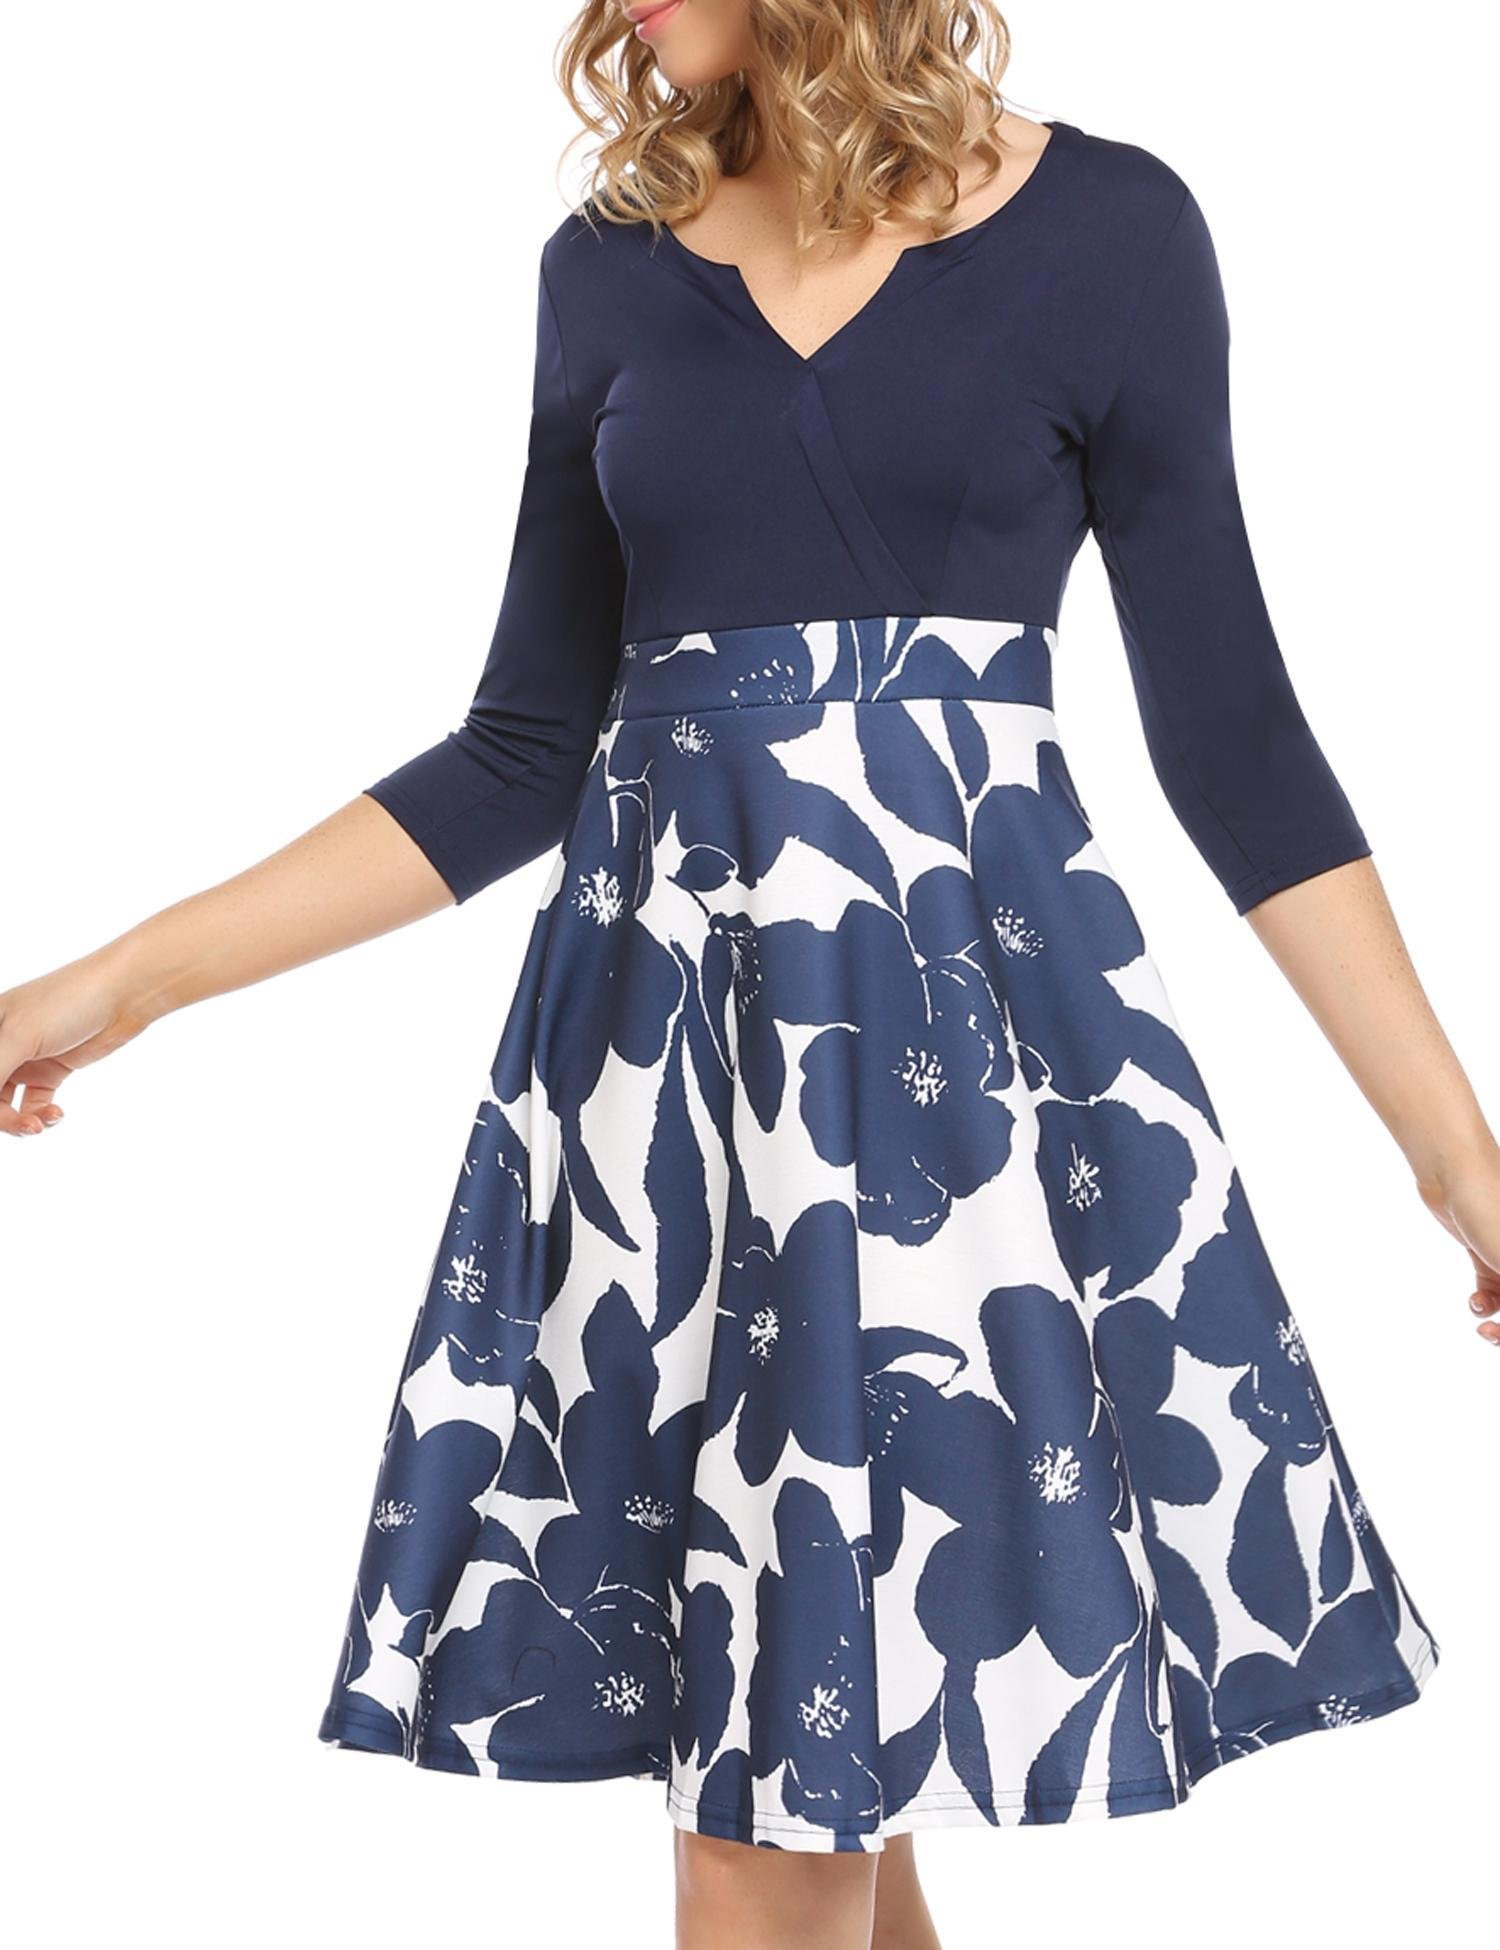 ANGVNS Women's Elegant Floral Printed A Line 3/4 Sleeve V Neck Casual Dress (Navy Blue,M)